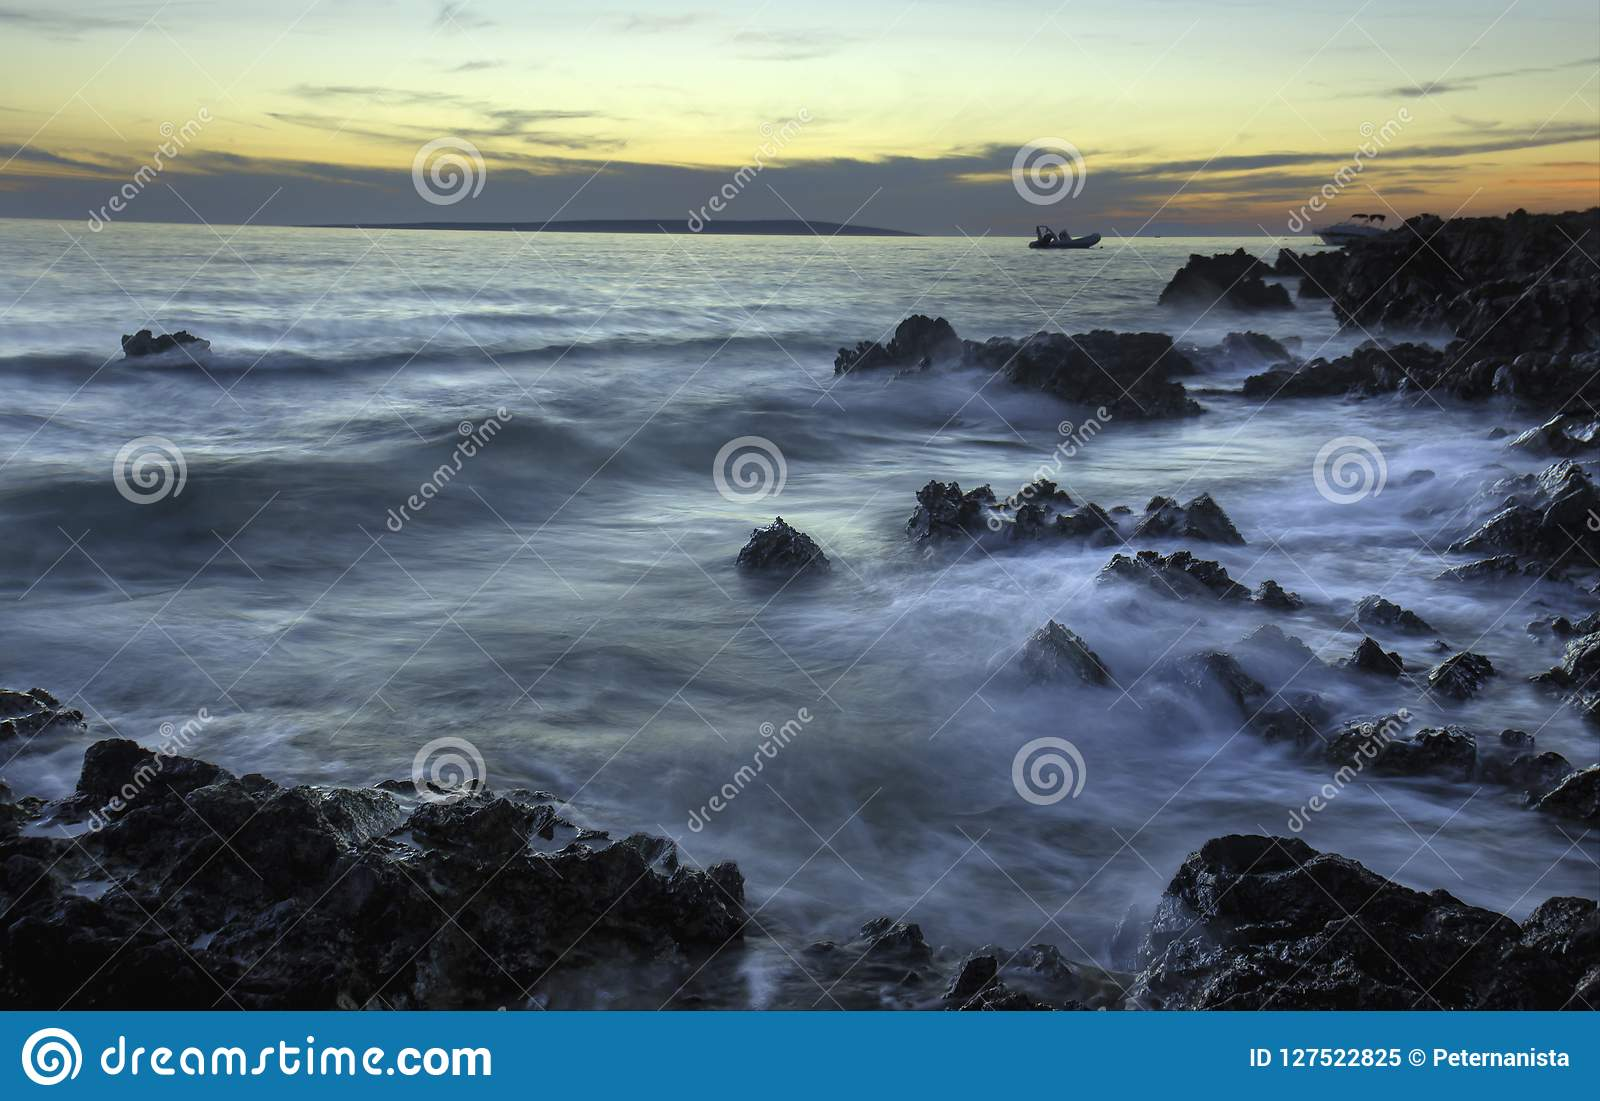 Sunset Coastline with Rocks and Ground Rush